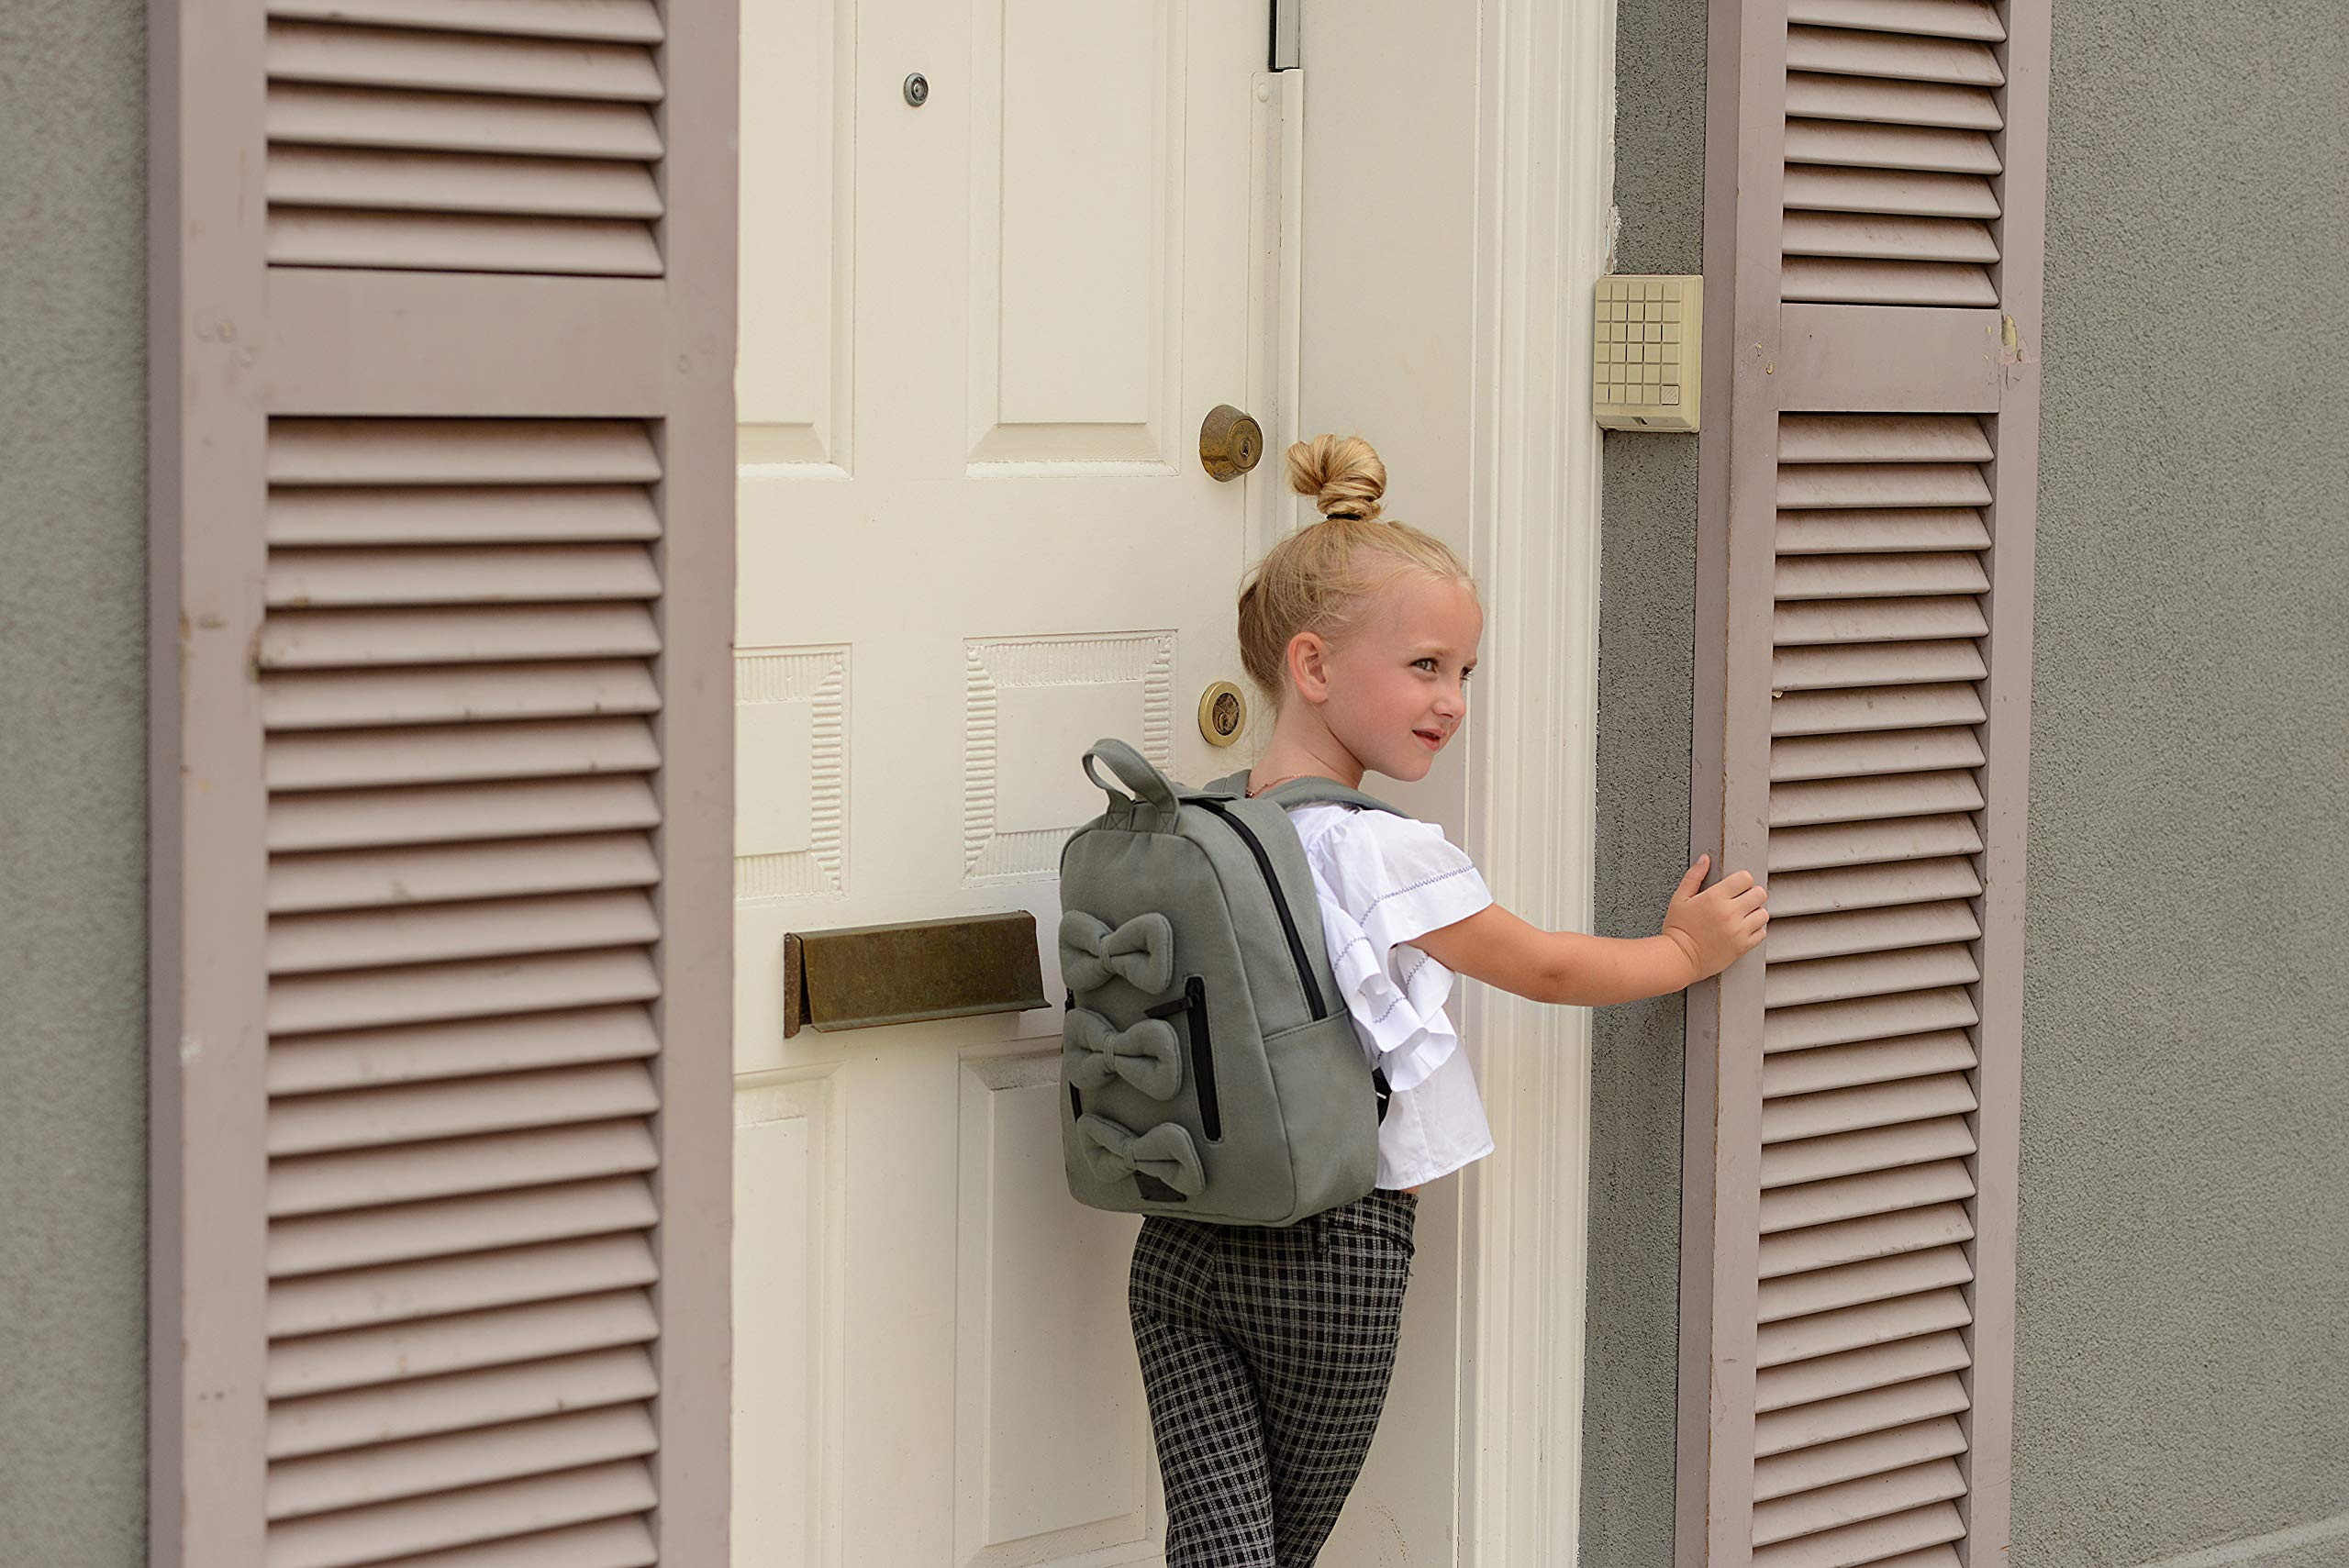 7AM Voyage Mini Bows Cotton Backpack, Toddlers, Kids and Teens School Backpack (Shadow) by 7AM Voyage (Image #3)